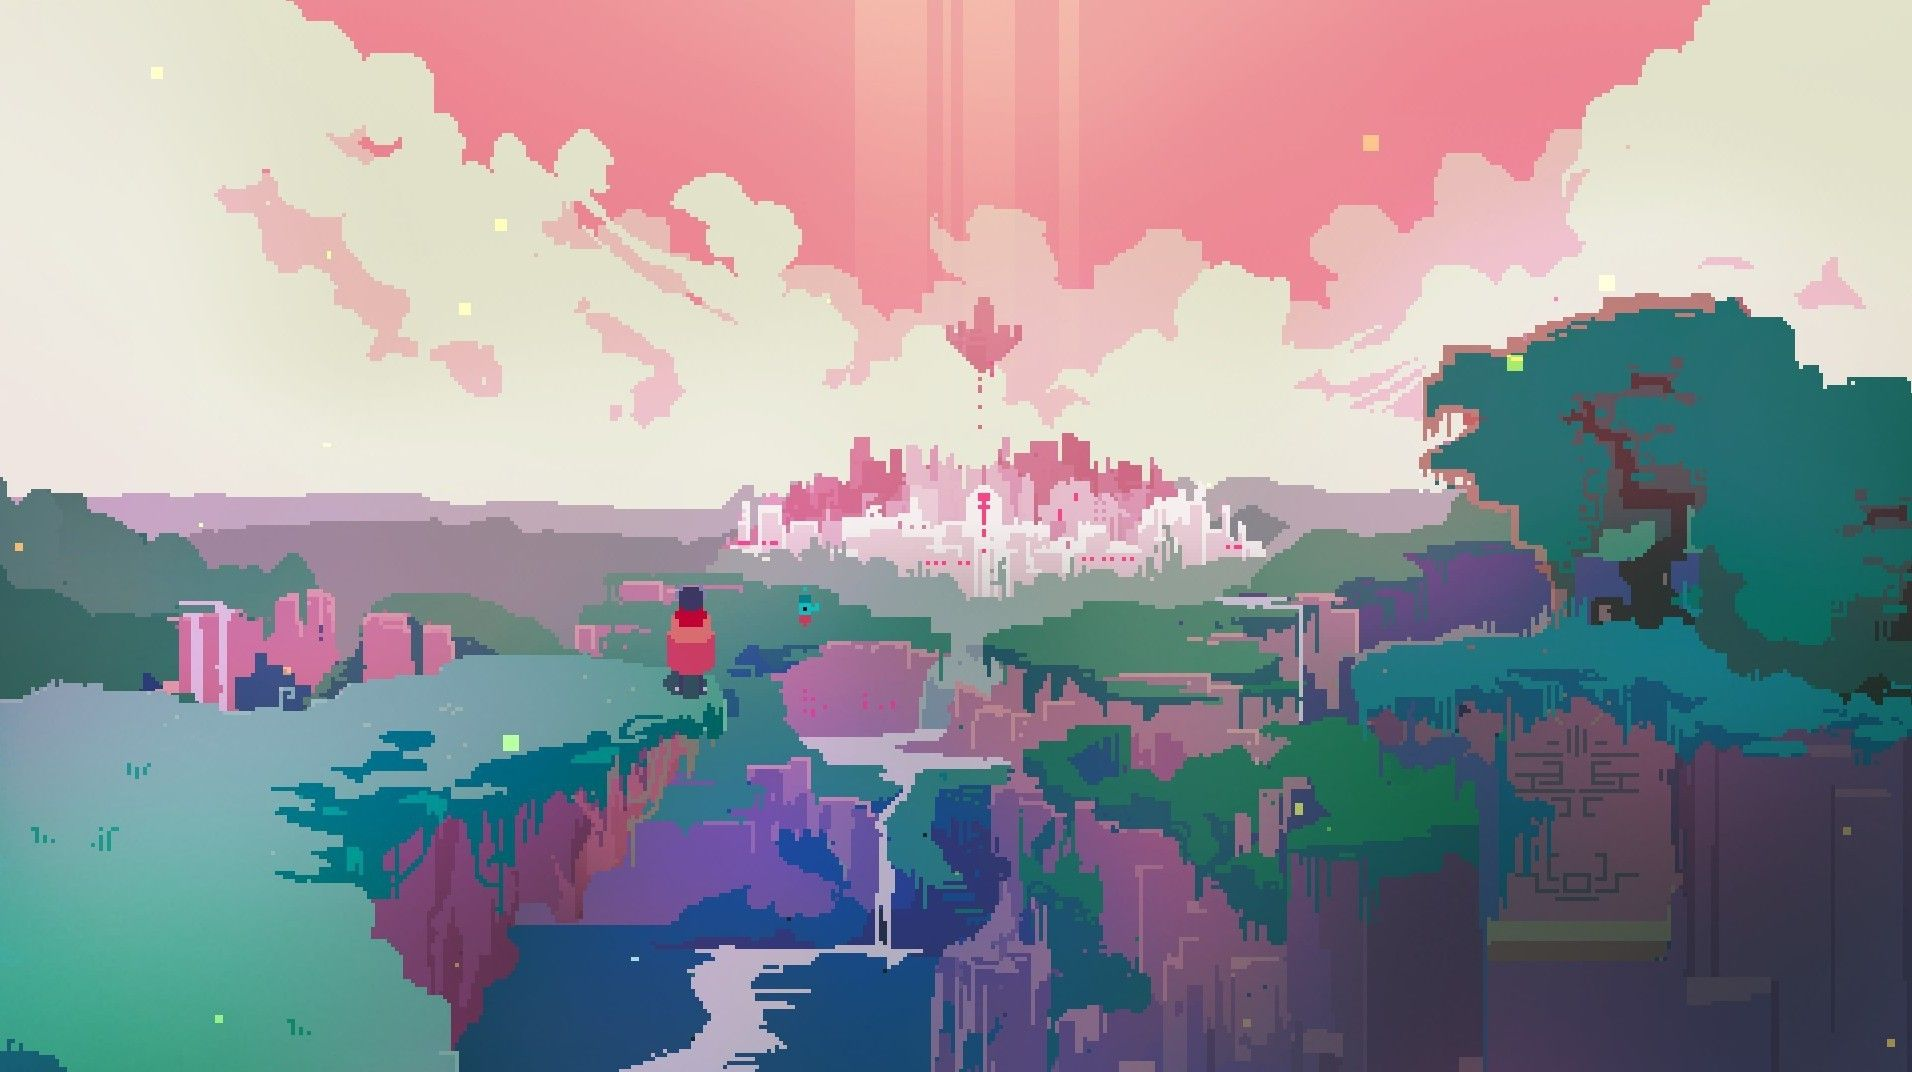 Download Hd Wallpapers Of 362482 Hyper Light Drifter Video Games Pixels Free Download High Quality And Wi Pixel Art Landscape Pixel Art Pixel Art Background